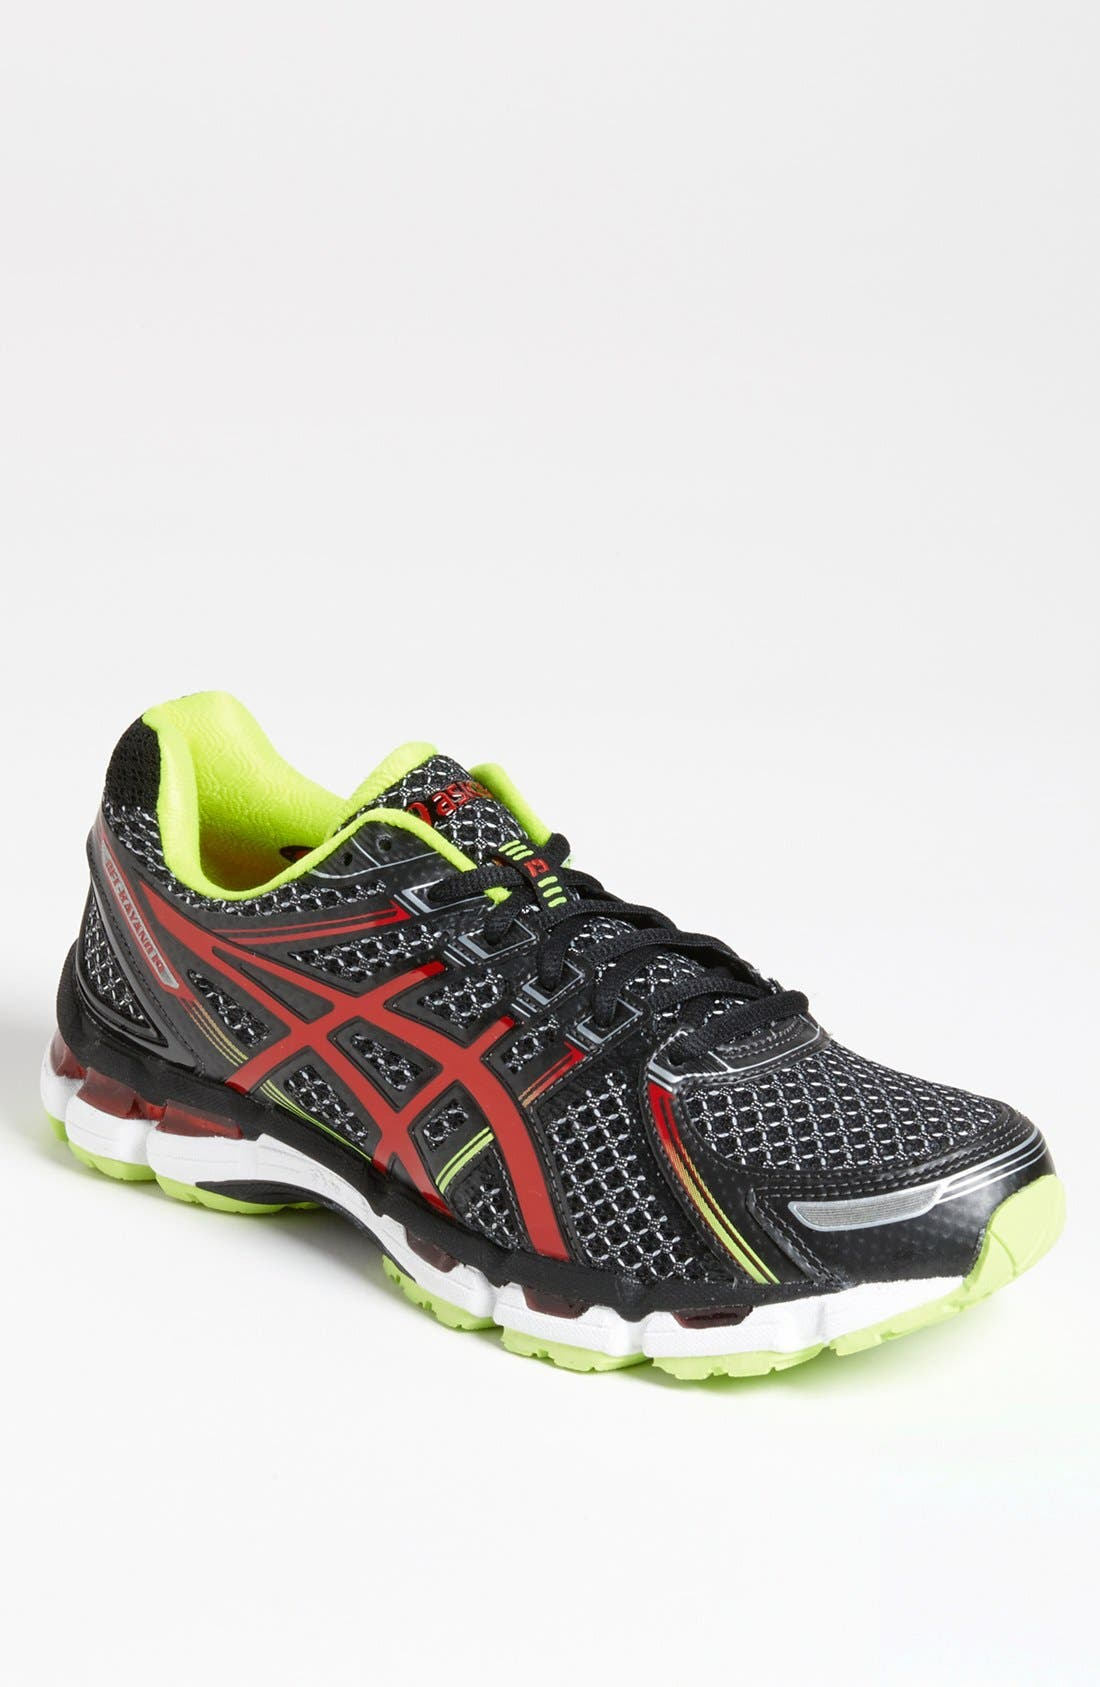 Alternate Image 1 Selected - ASICS® 'GEL-Kayano® 19' Running Shoe (Men) (Online Only) (Regular Retail Price: $144.95)